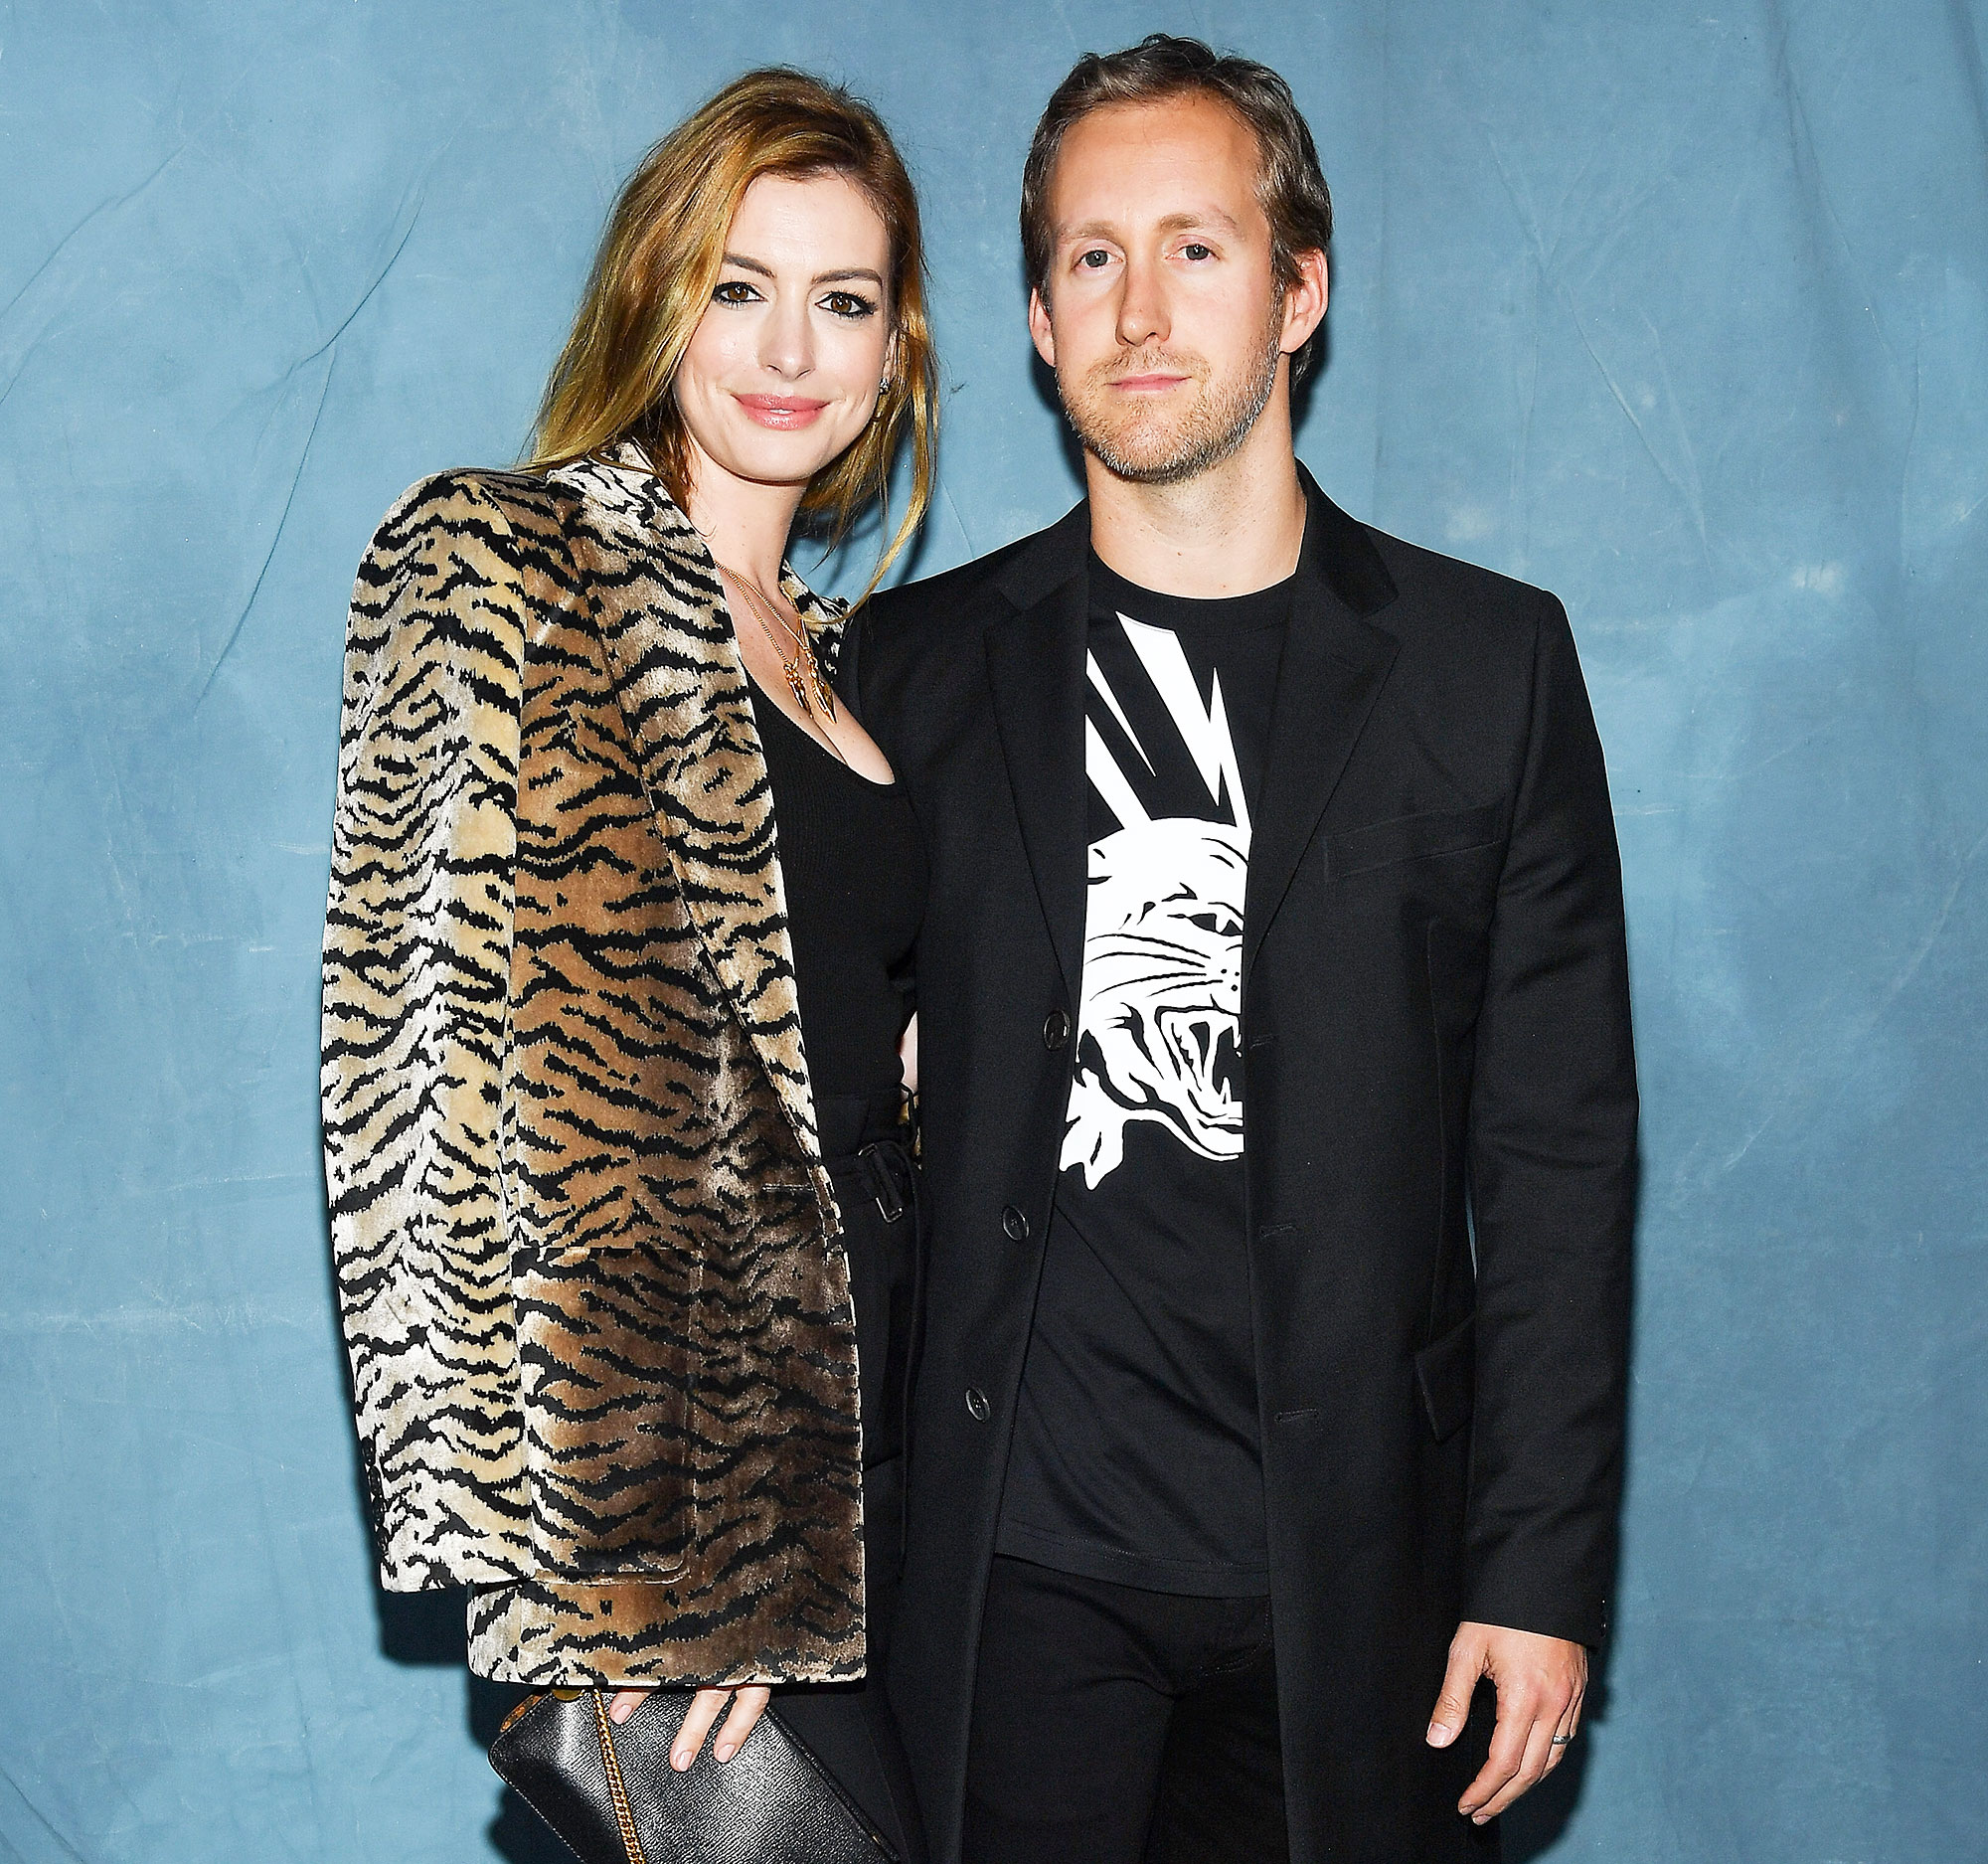 Adam Shulman and Anne Hathaway Pregnant With Baby Number 2